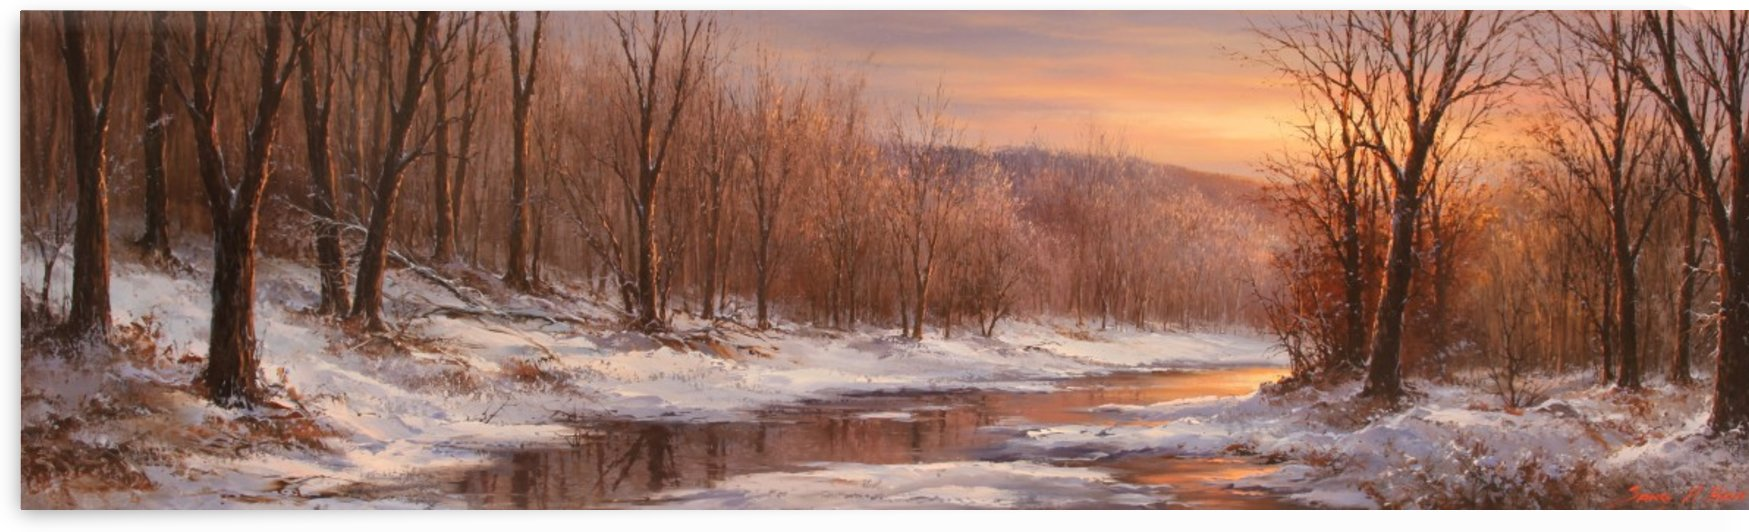 The Snow Relents by Sang H Han